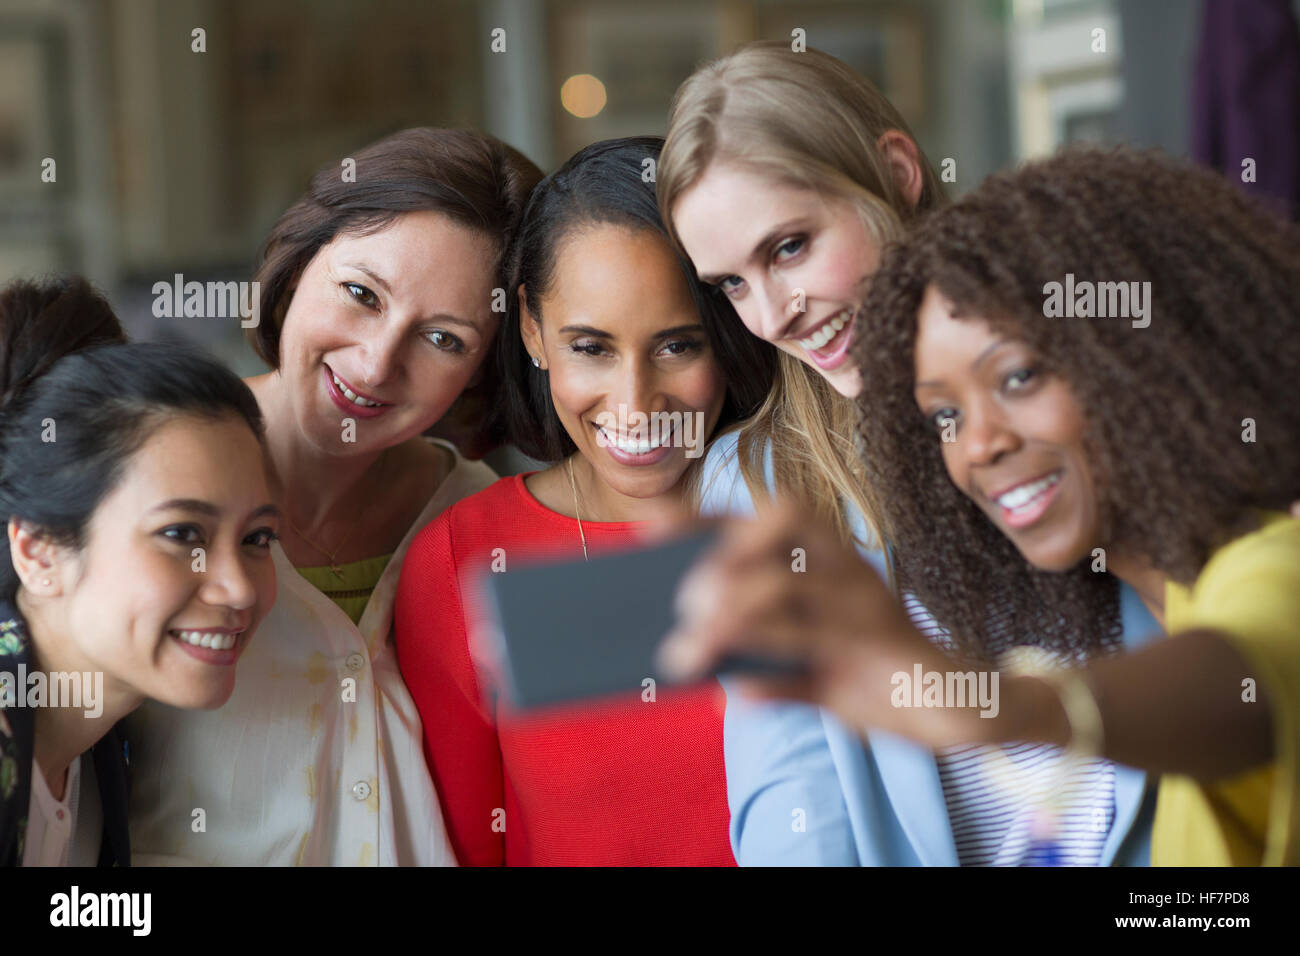 Women friends taking selfie with camera phone - Stock Image